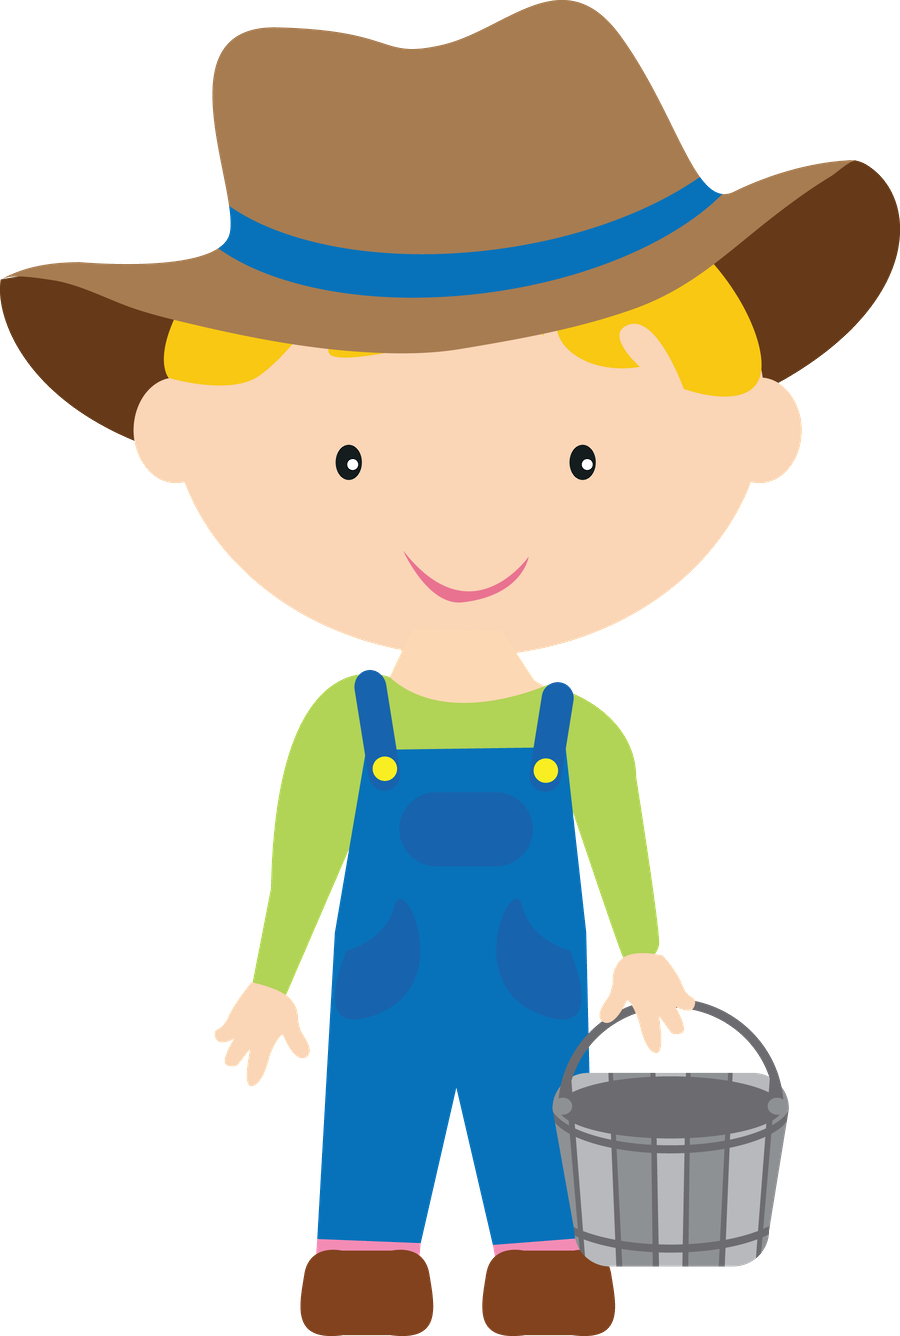 Fazenda minus pinterest boys. Farm clipart kids